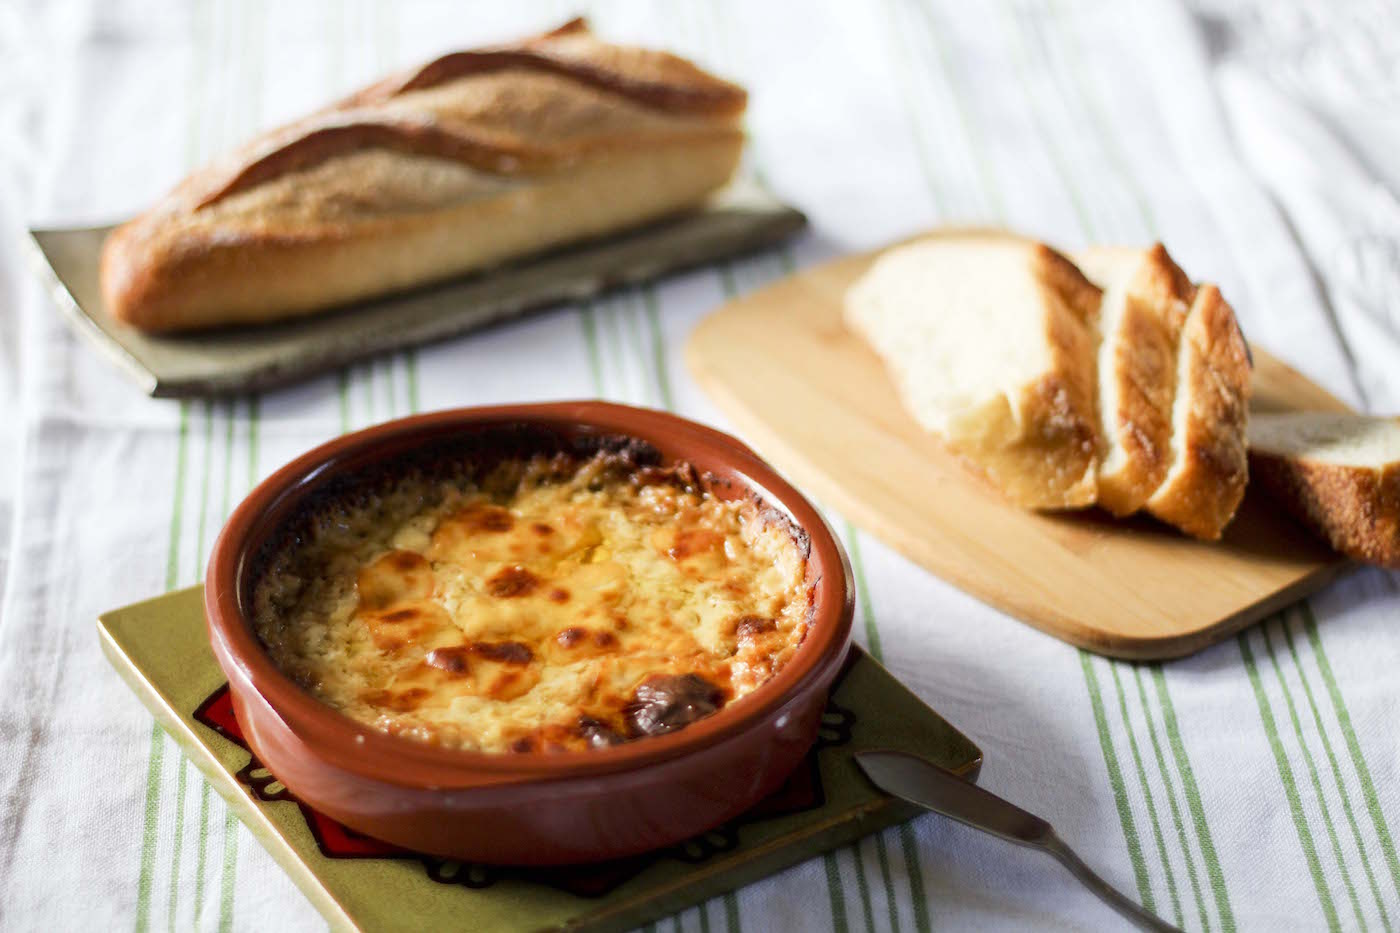 Caramelized Onion and Cheese Dip